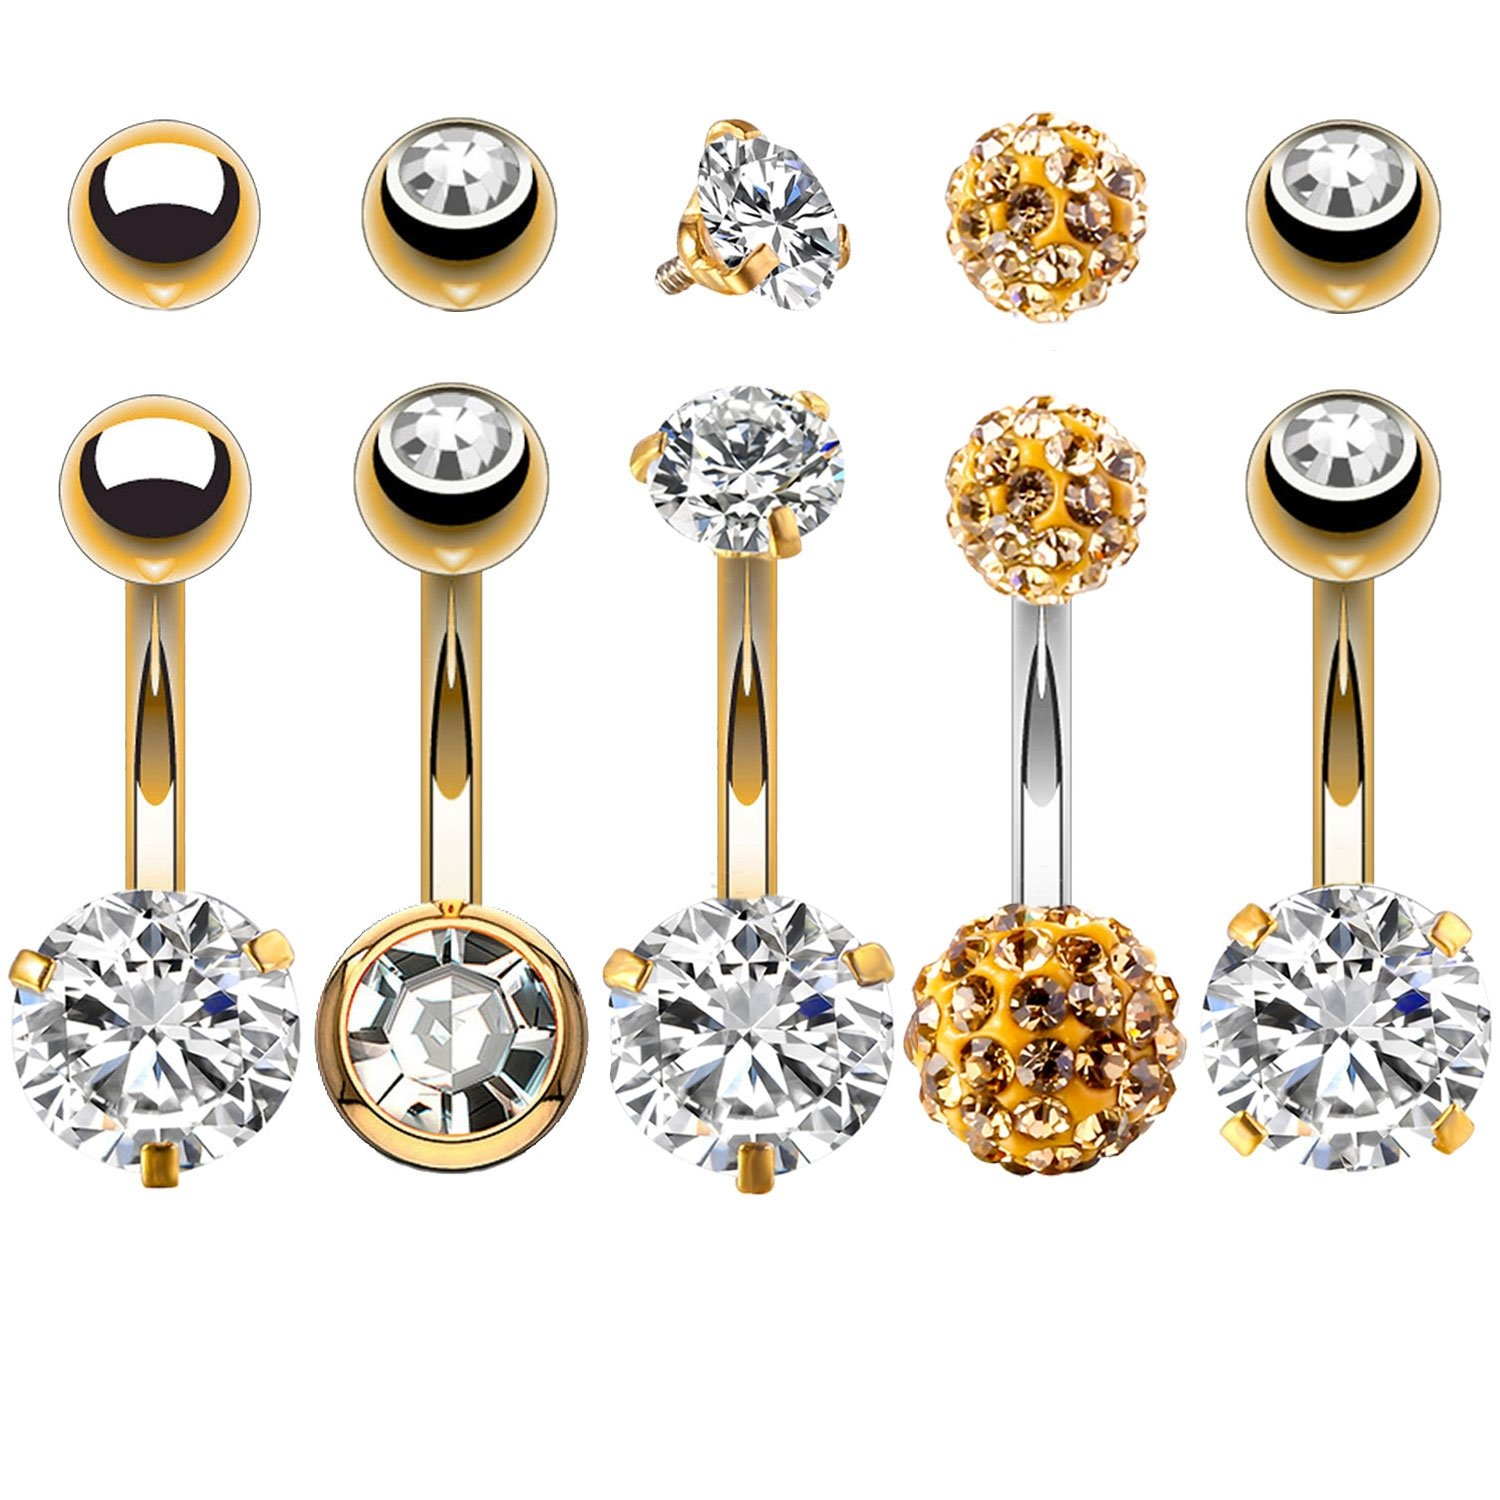 BodyJ4You 5PCS Belly Button Rings 14G Goldtone Stainless Steel CZ Navel Body Piercing Jewelry Set